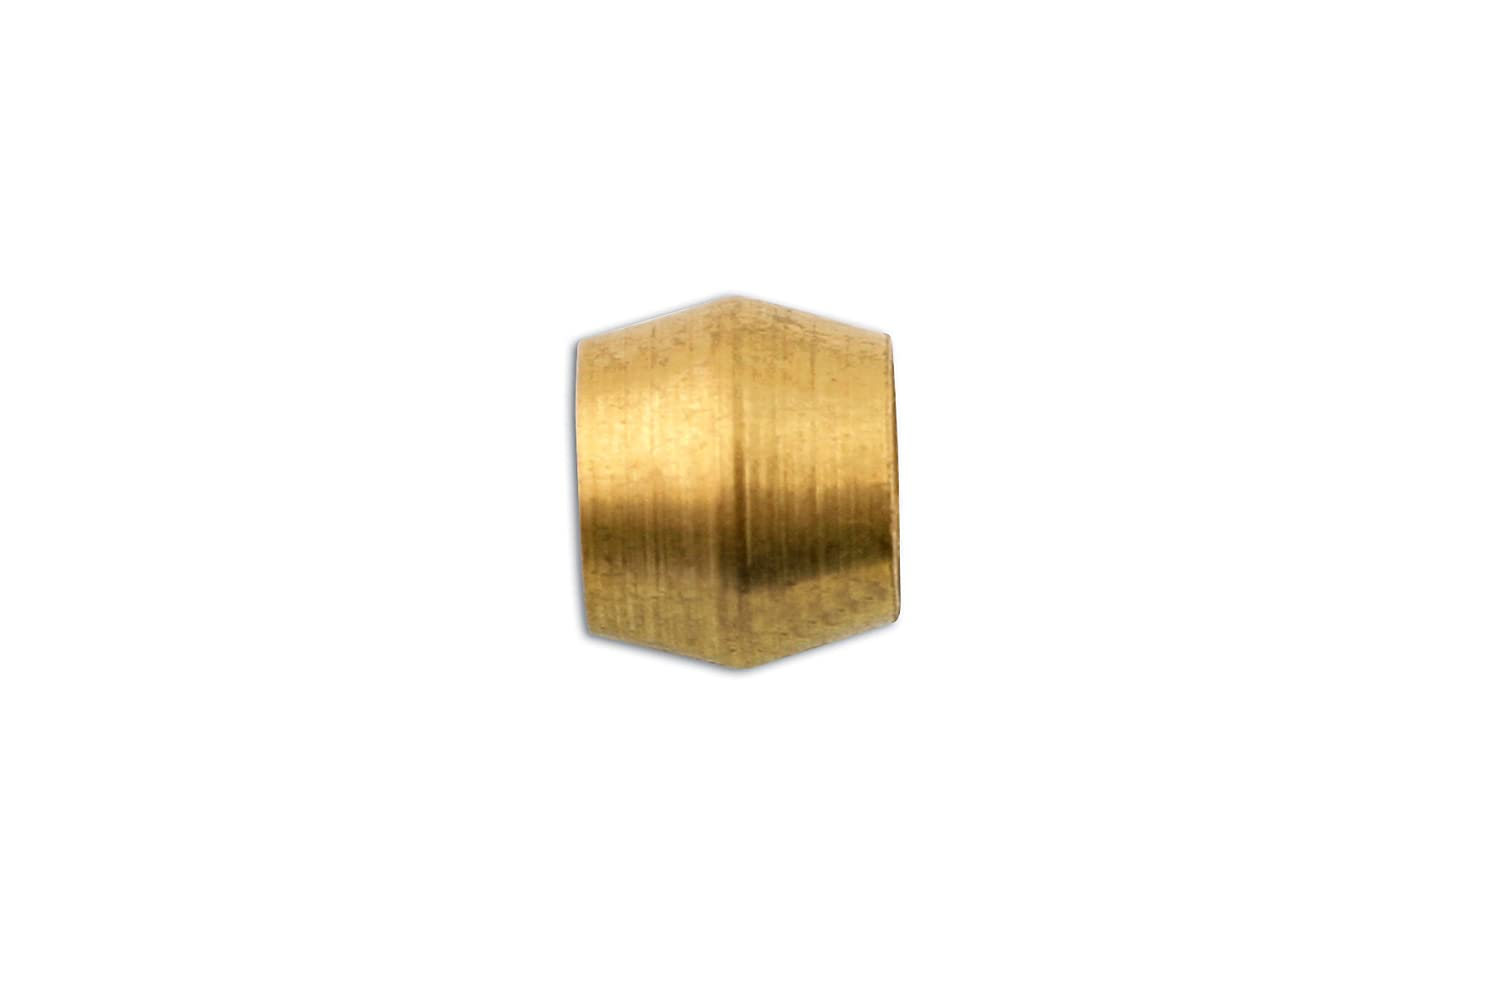 Connect 31161 1/4-inch Brass Olive Barrel (Pack of 100) The Tool Connection Ltd.